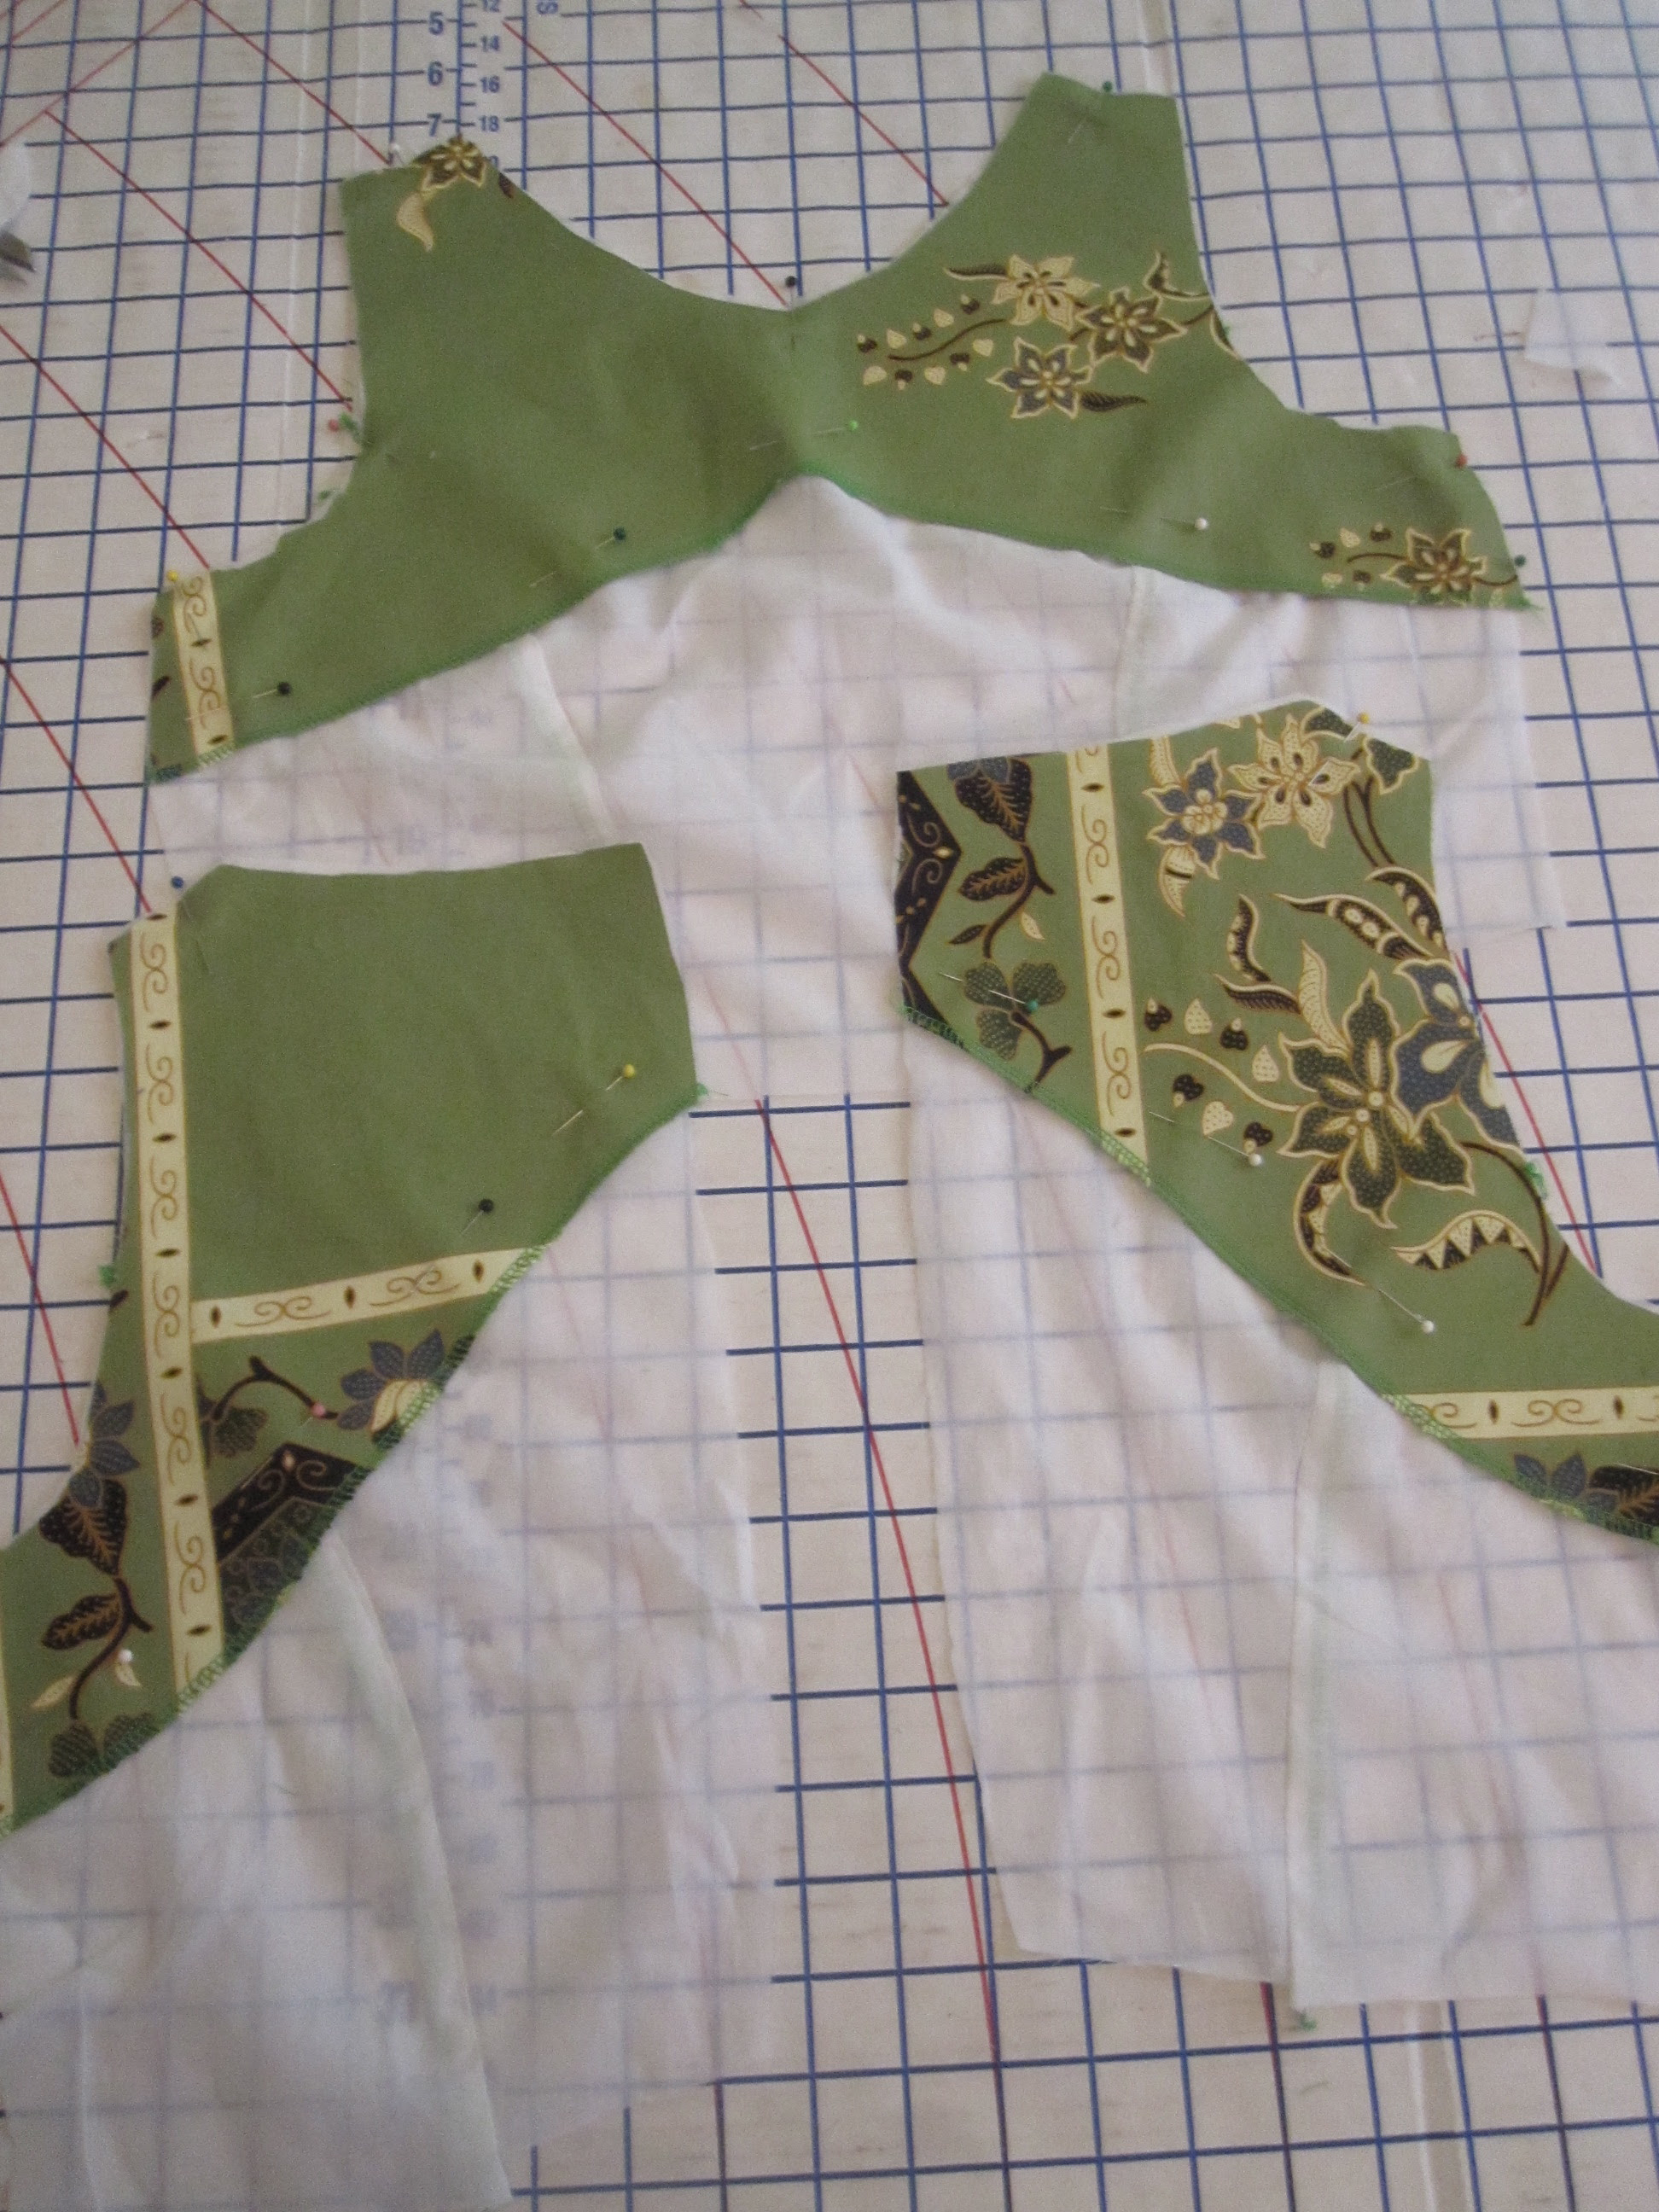 Facing Pinned to Lining